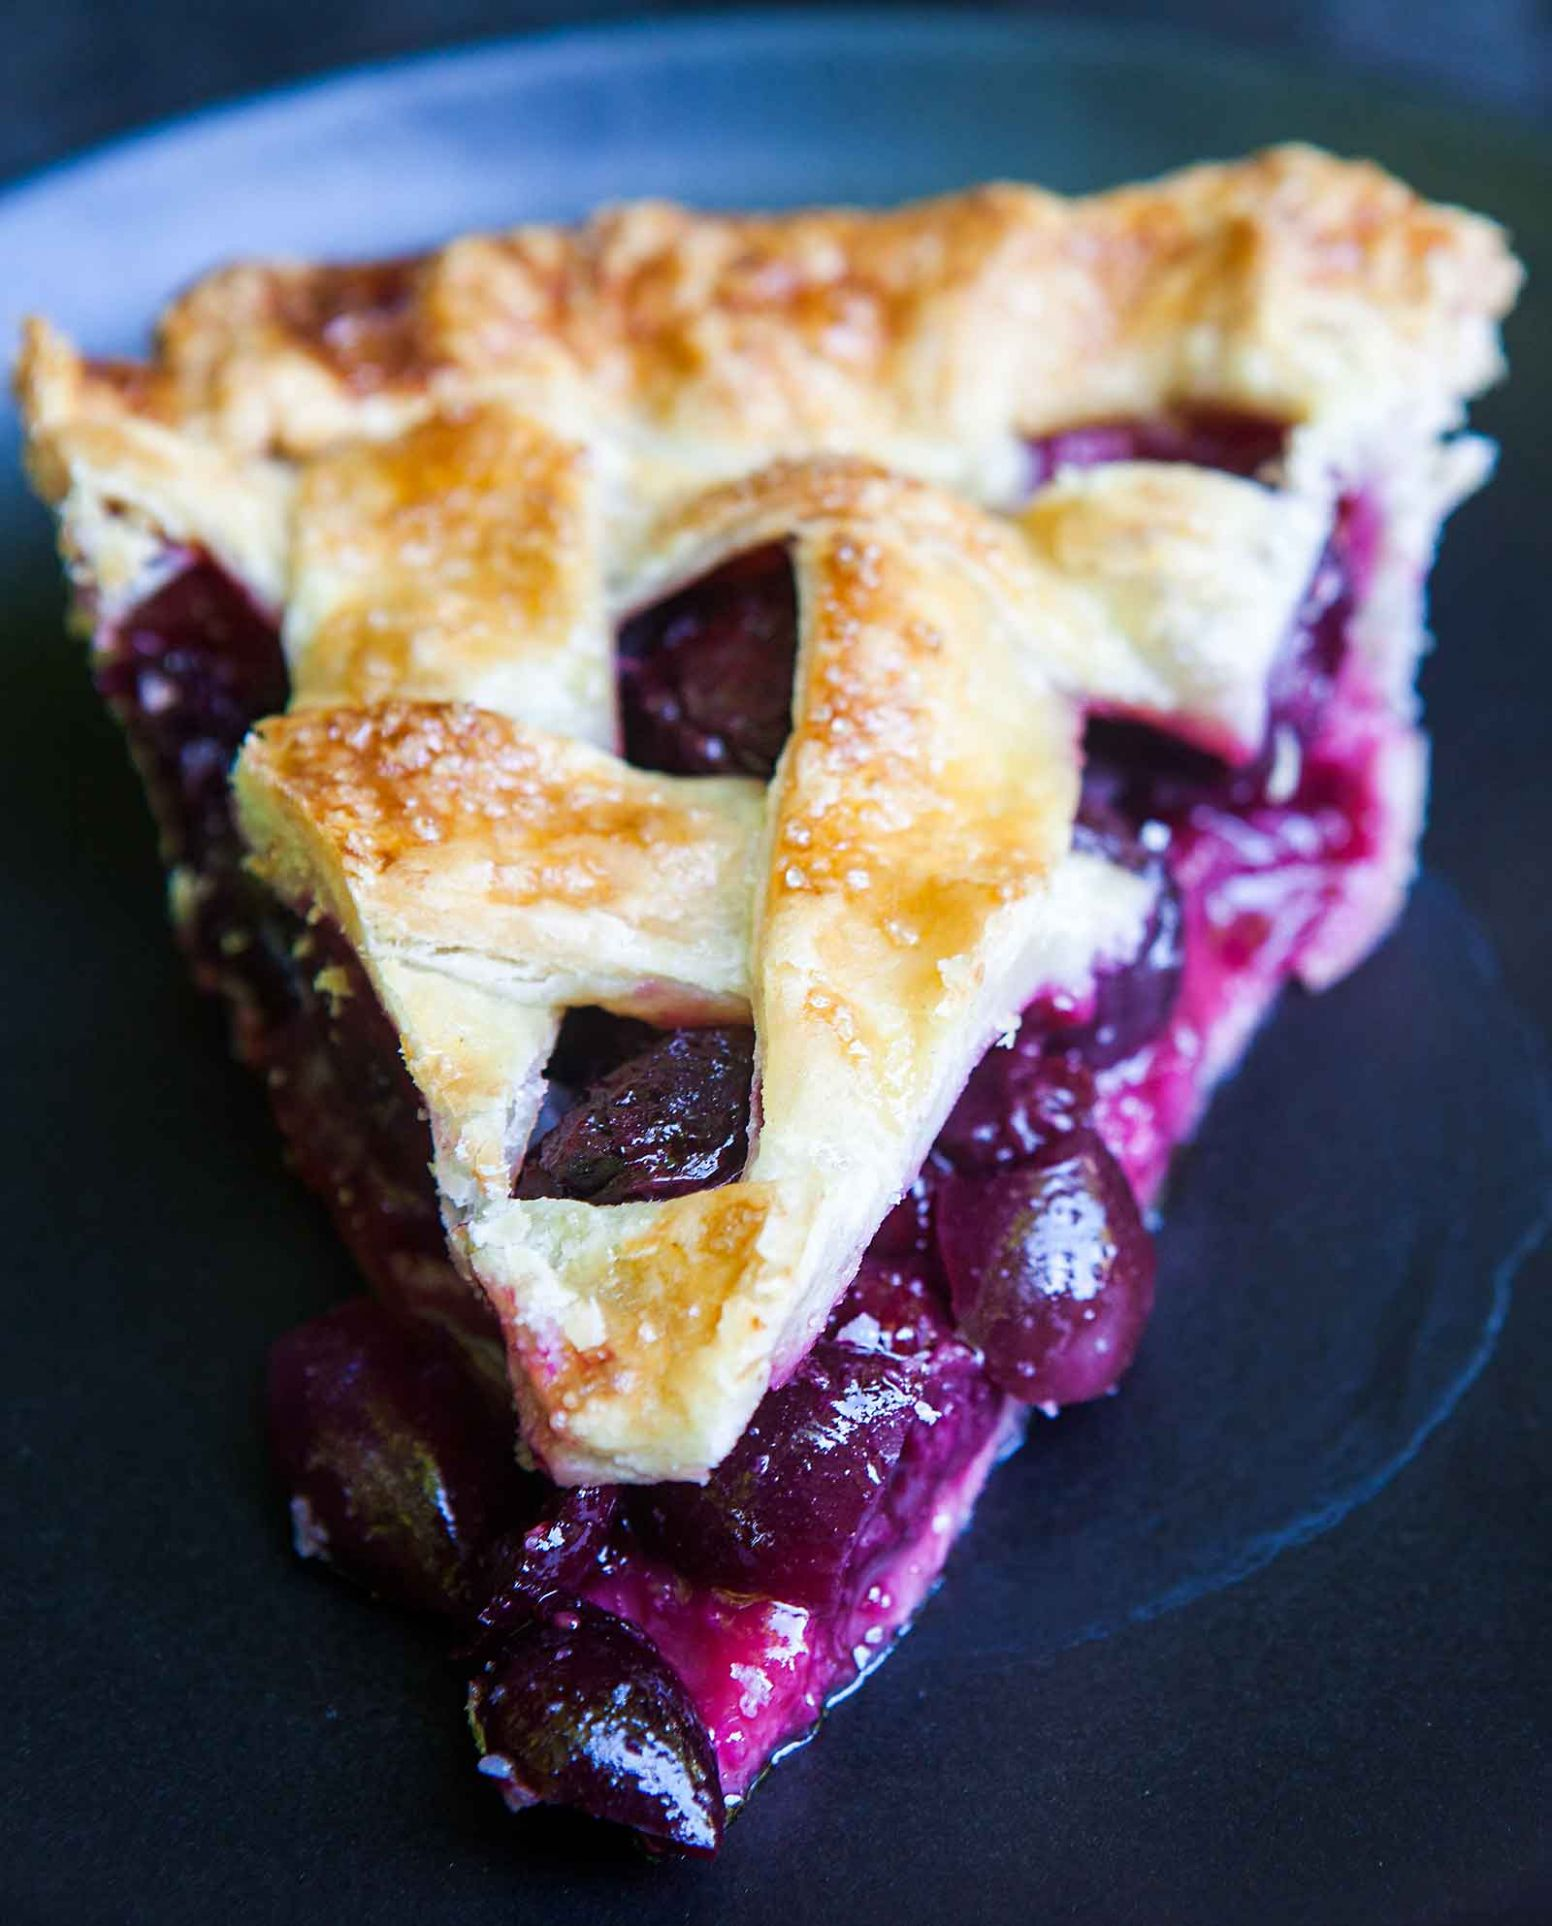 Sweet Cherry Pie - Dessert Recipes Made With Cherry Pie Filling